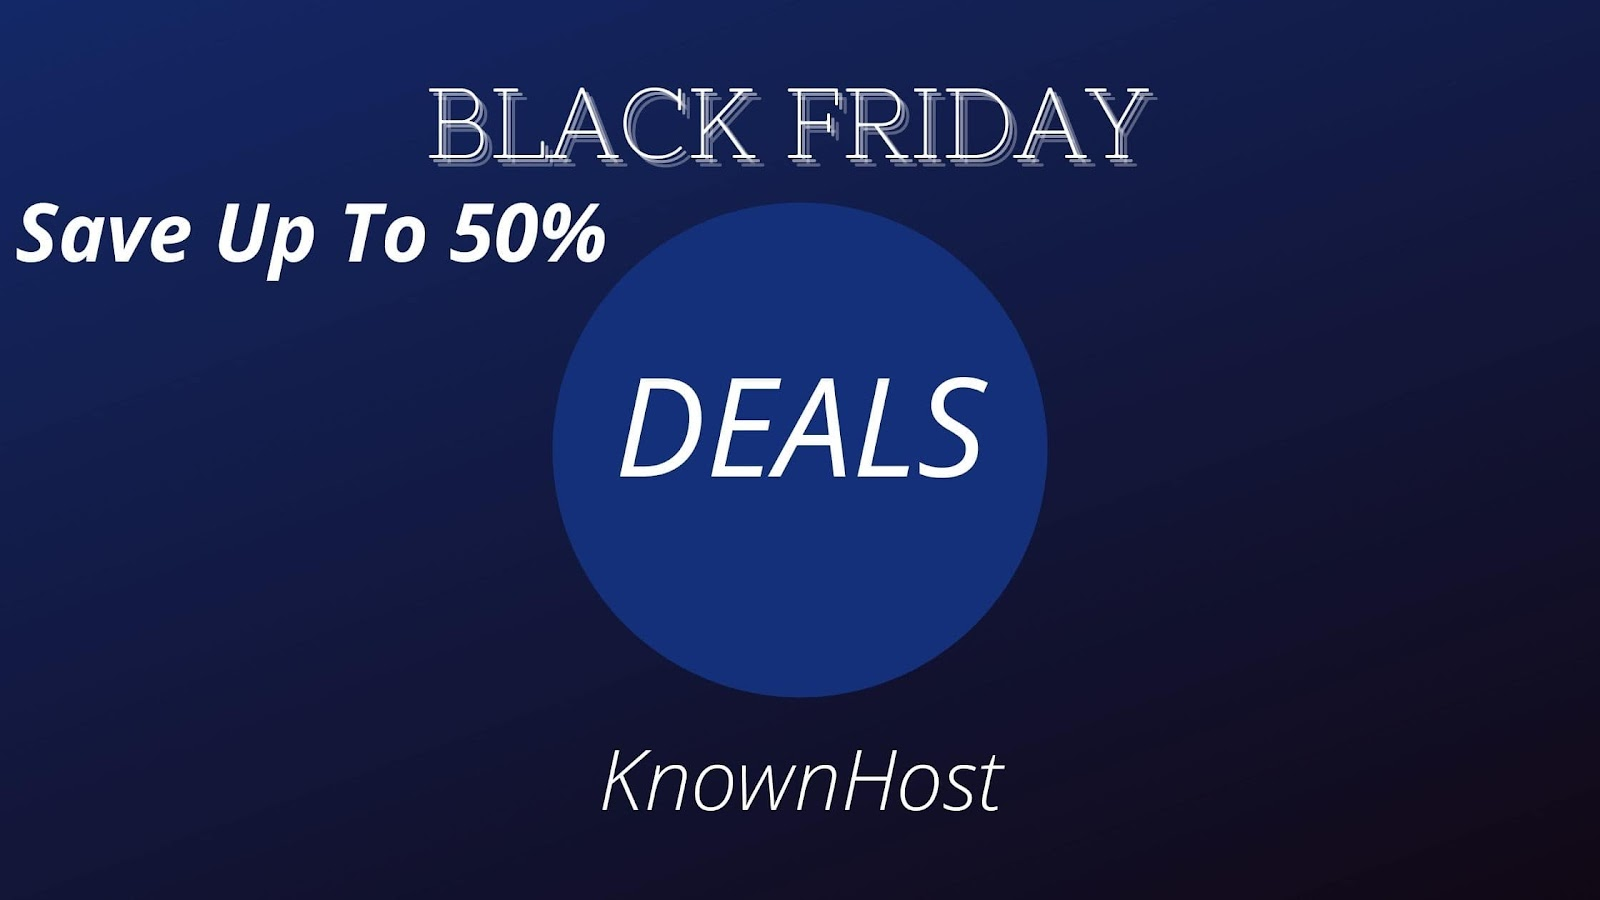 KnownHost: Save Up To 50%